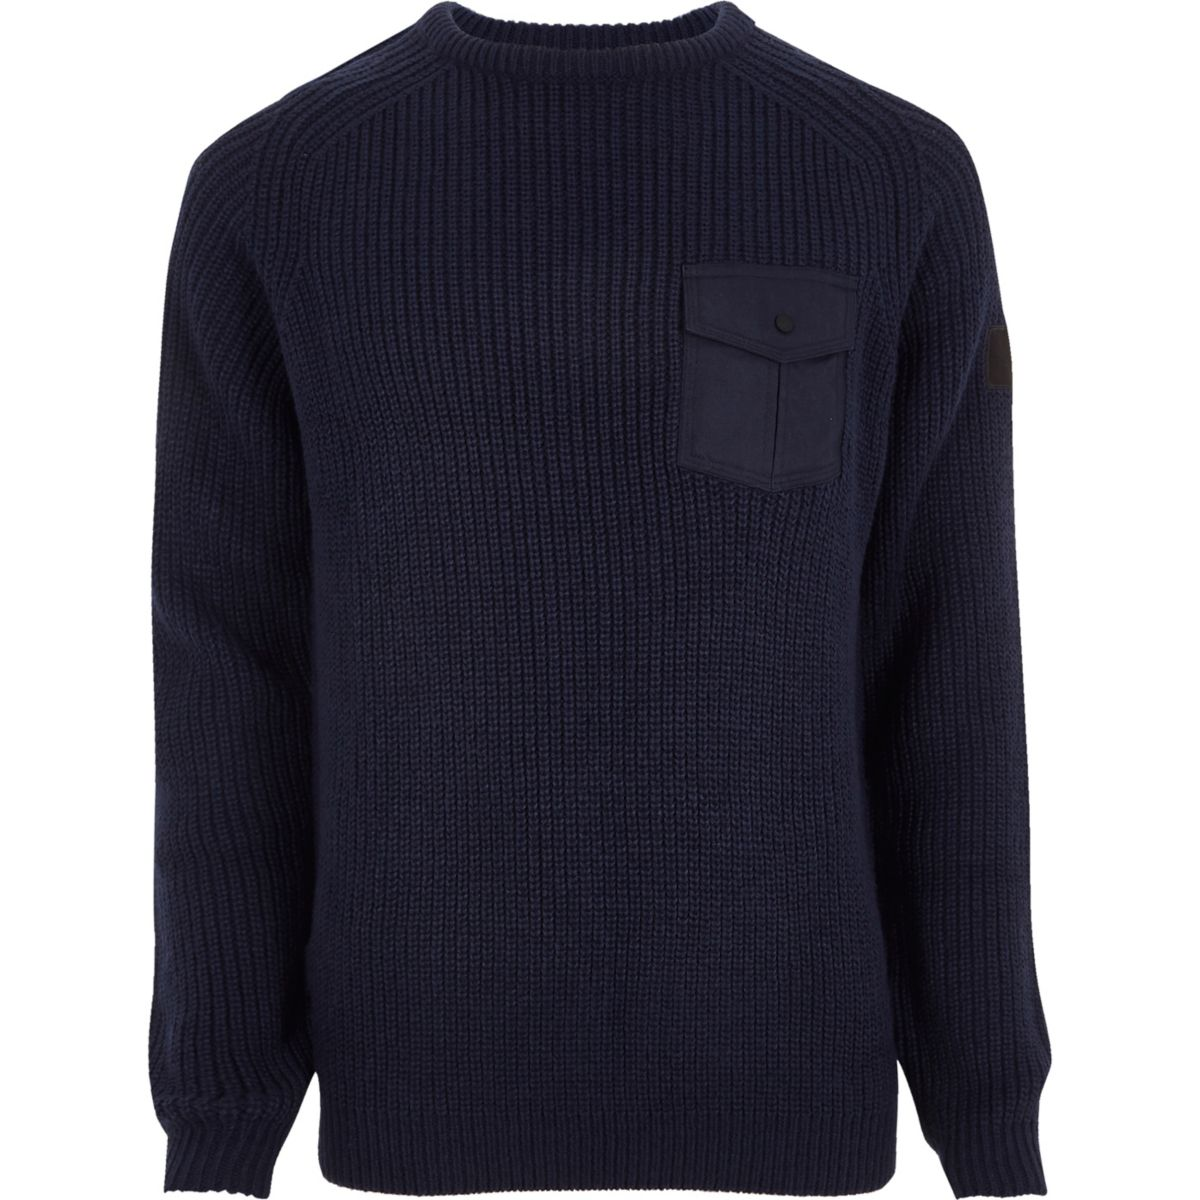 Navy chest patch pocket ribbed knit jumper